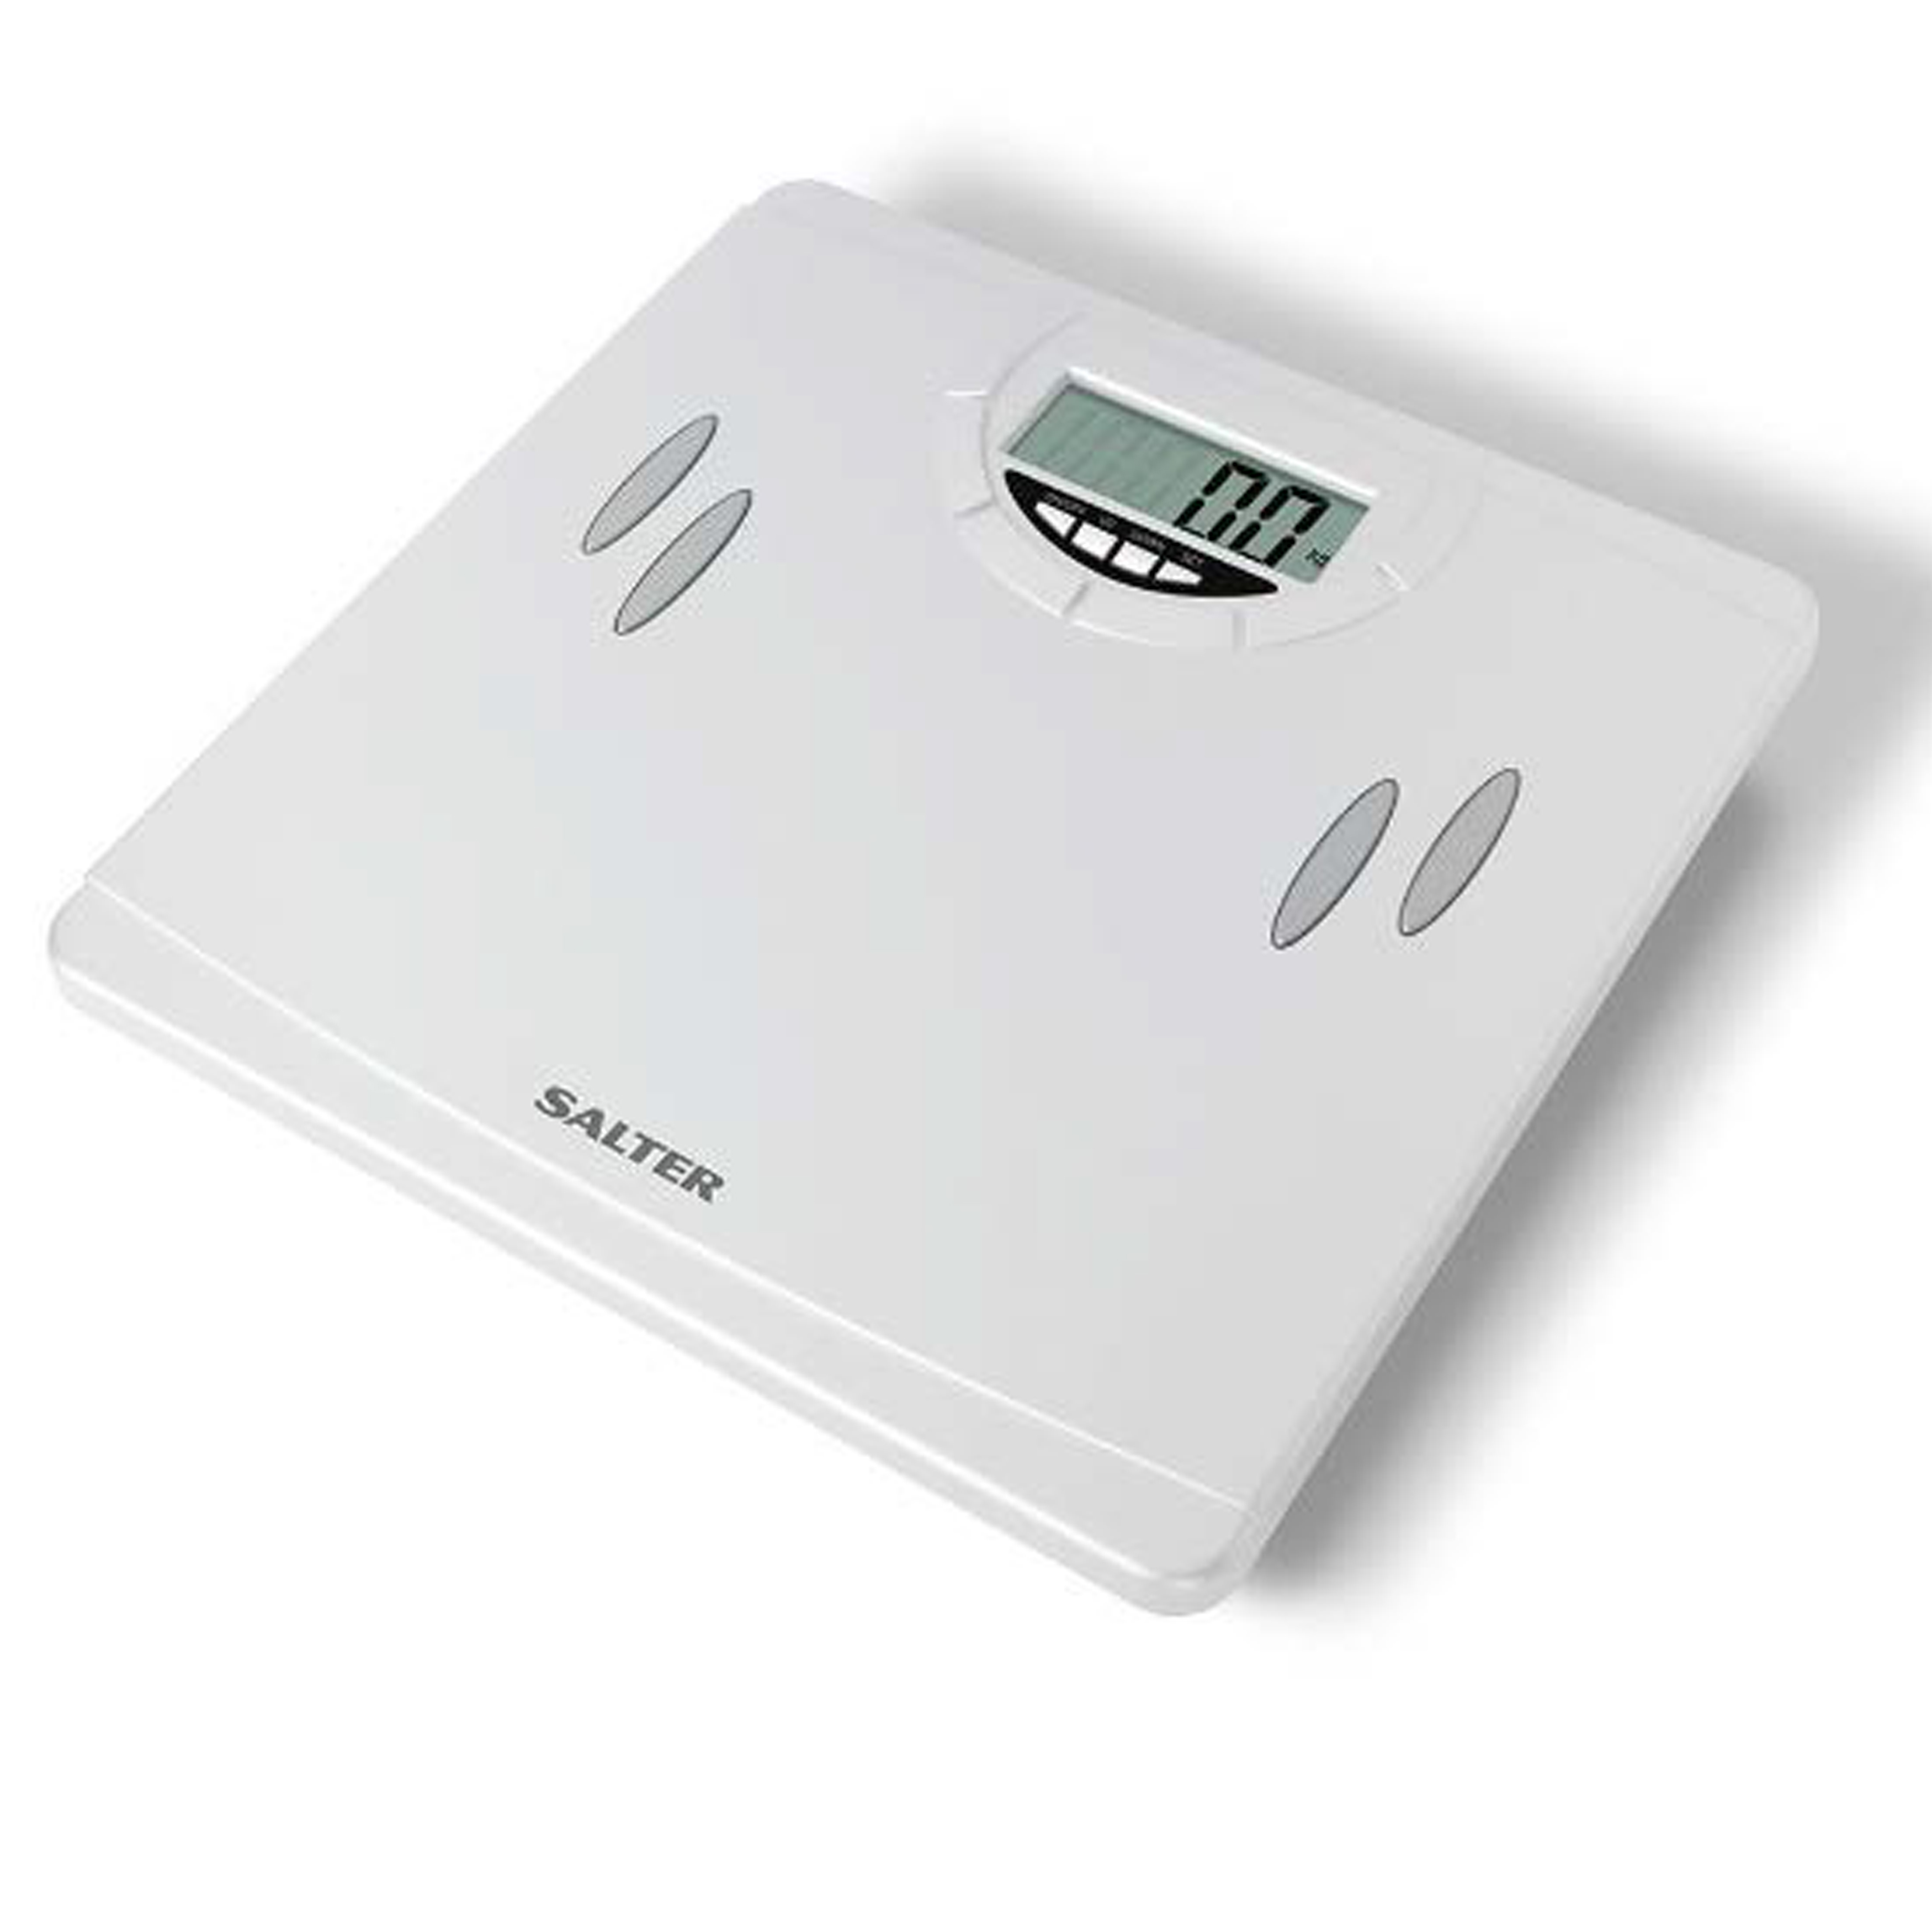 Cheap Bathroom Scales Free Delivery: Salter 9139WH3T Compact Analyser Bathroom Scale, White